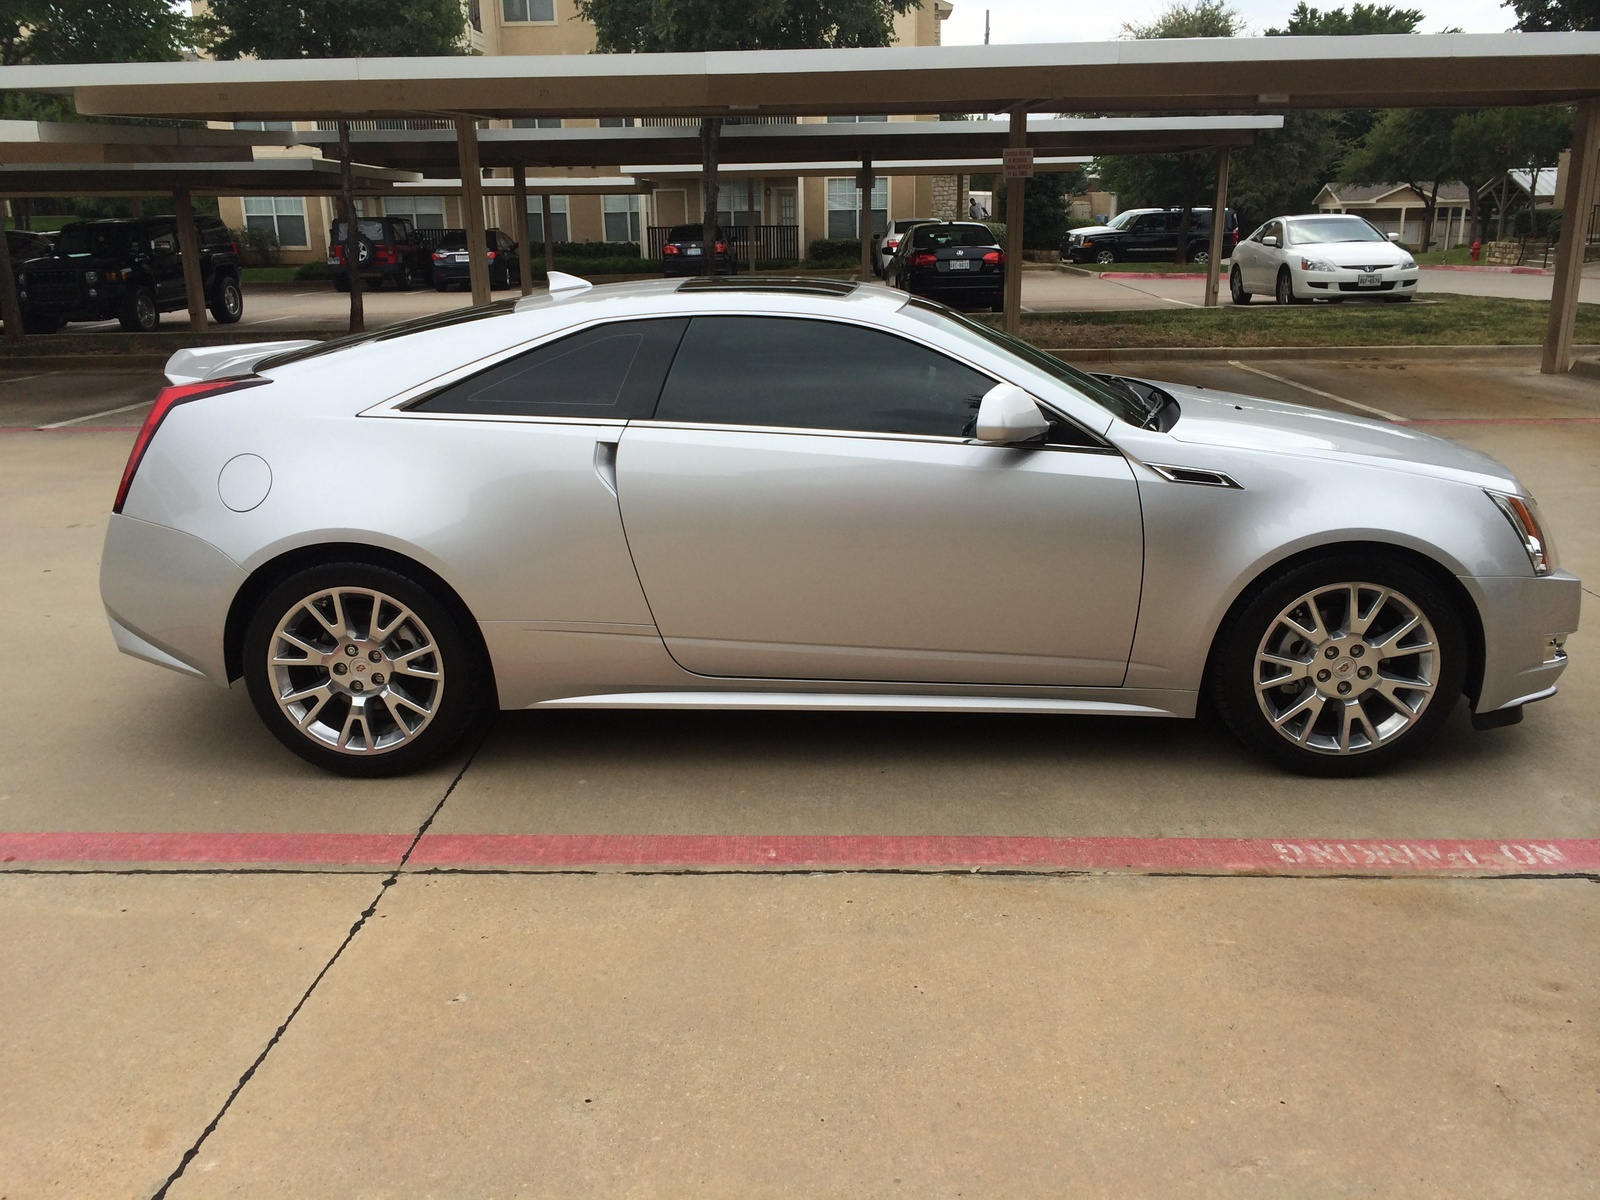 Used Cadillac Cts Coupe >> 2012 Cadillac CTS Coupe - Pictures - CarGurus